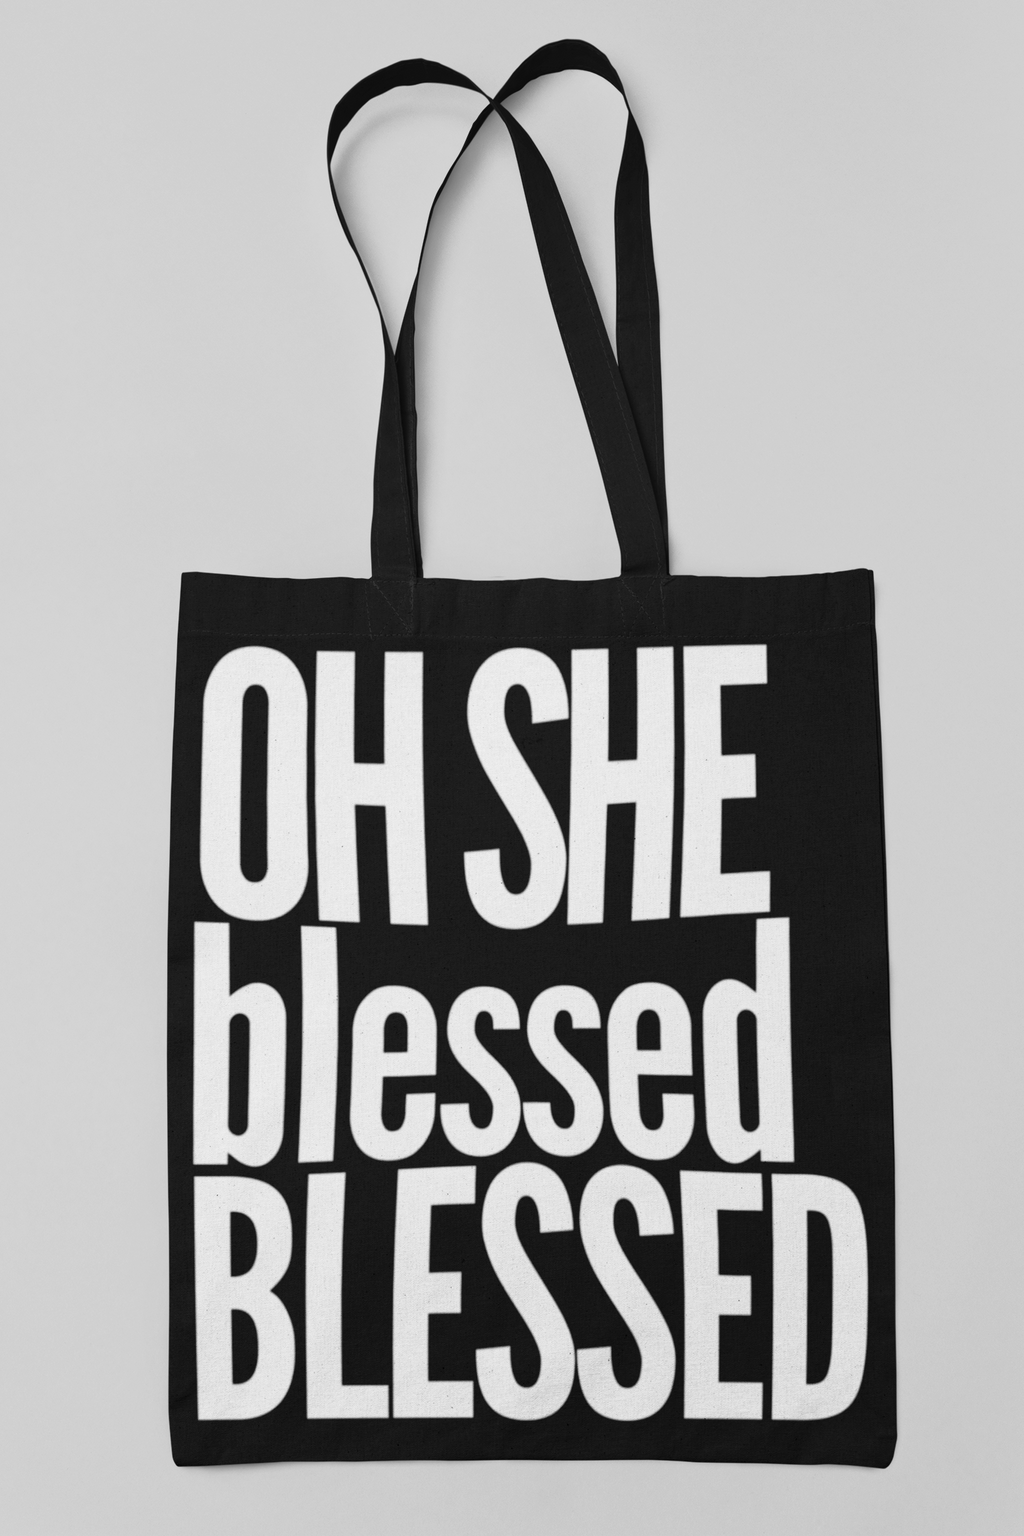 Oh she blessed BLESSED tote bag - My Business His Glory